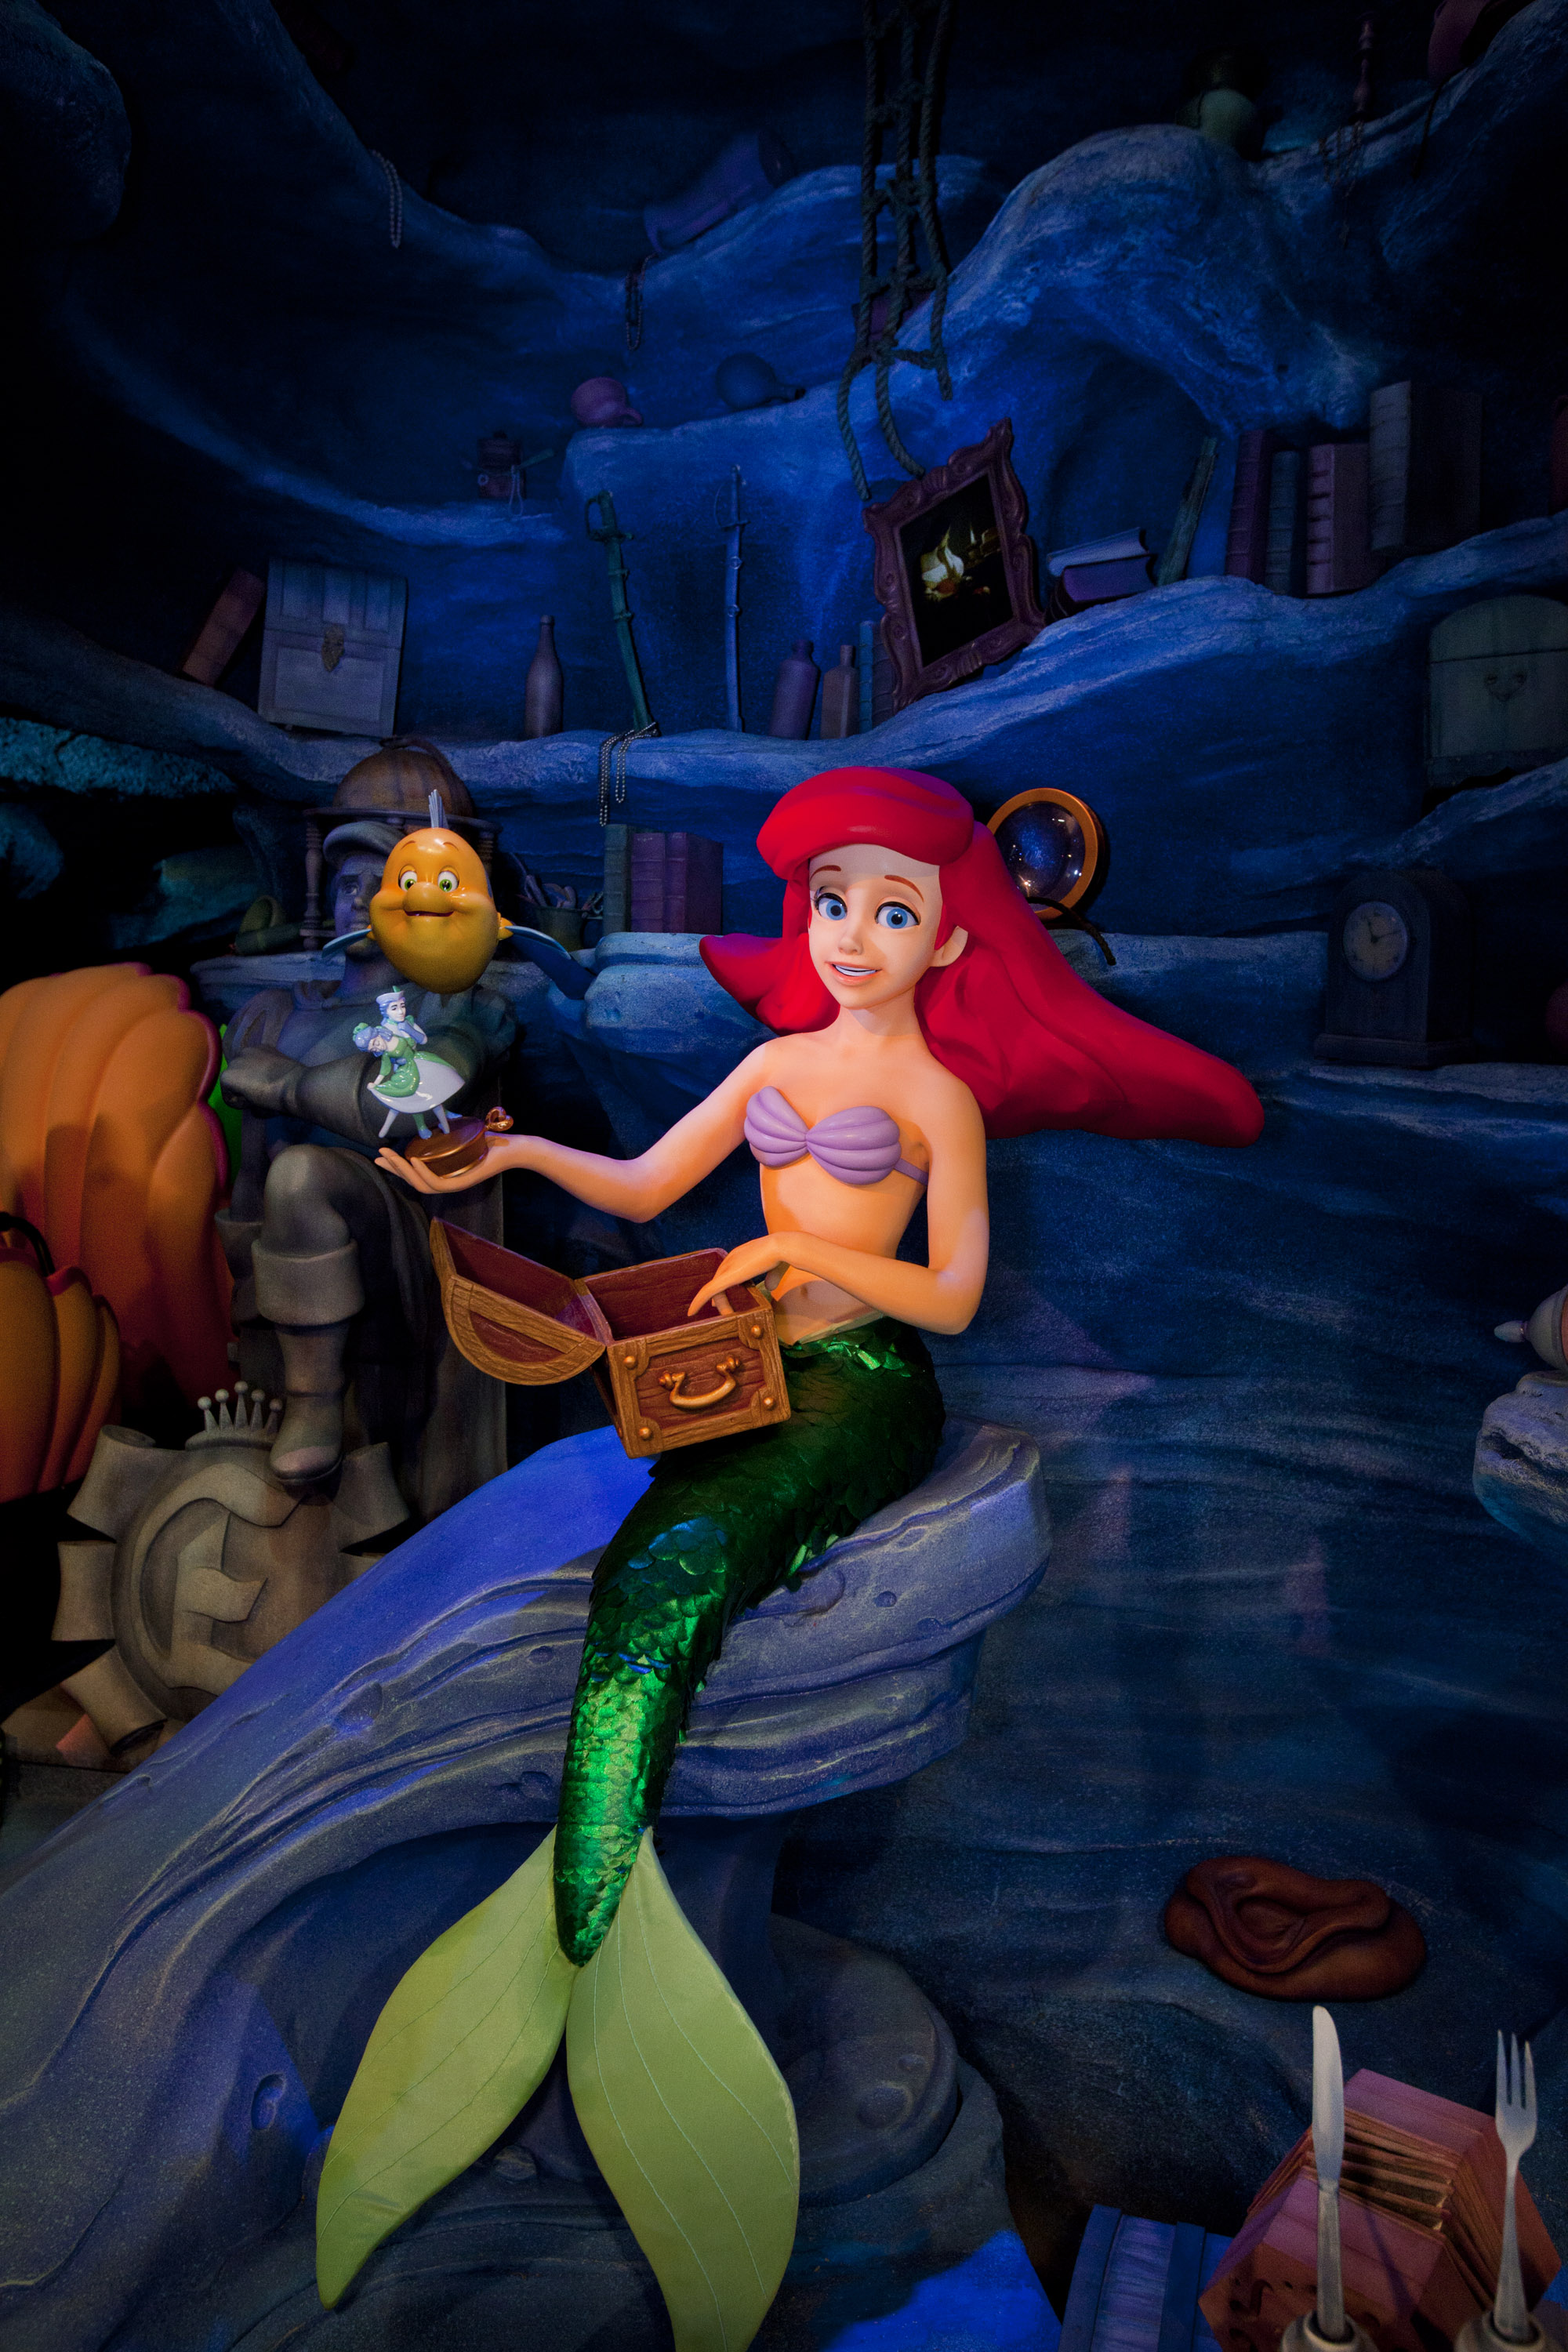 Glen Keane Who Animated Ariel For The Little Mermaid Recommended That Ariels Hair Be Treated As A Character All Its Own Photo C Disney